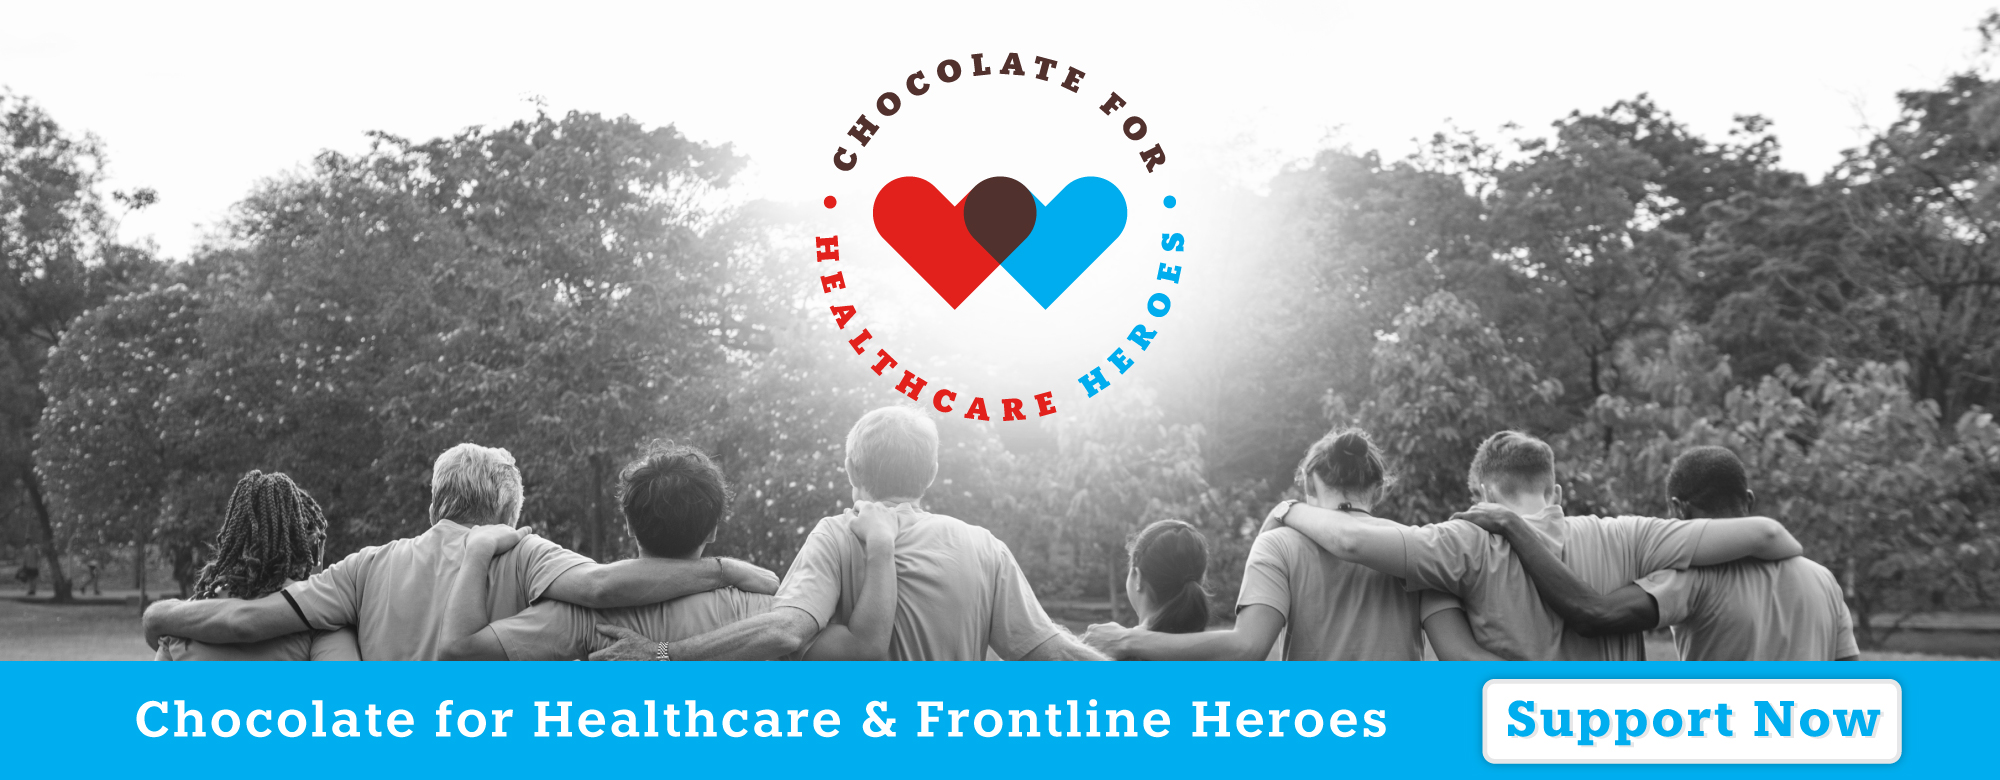 Click Here to Support Healthcare Heroes